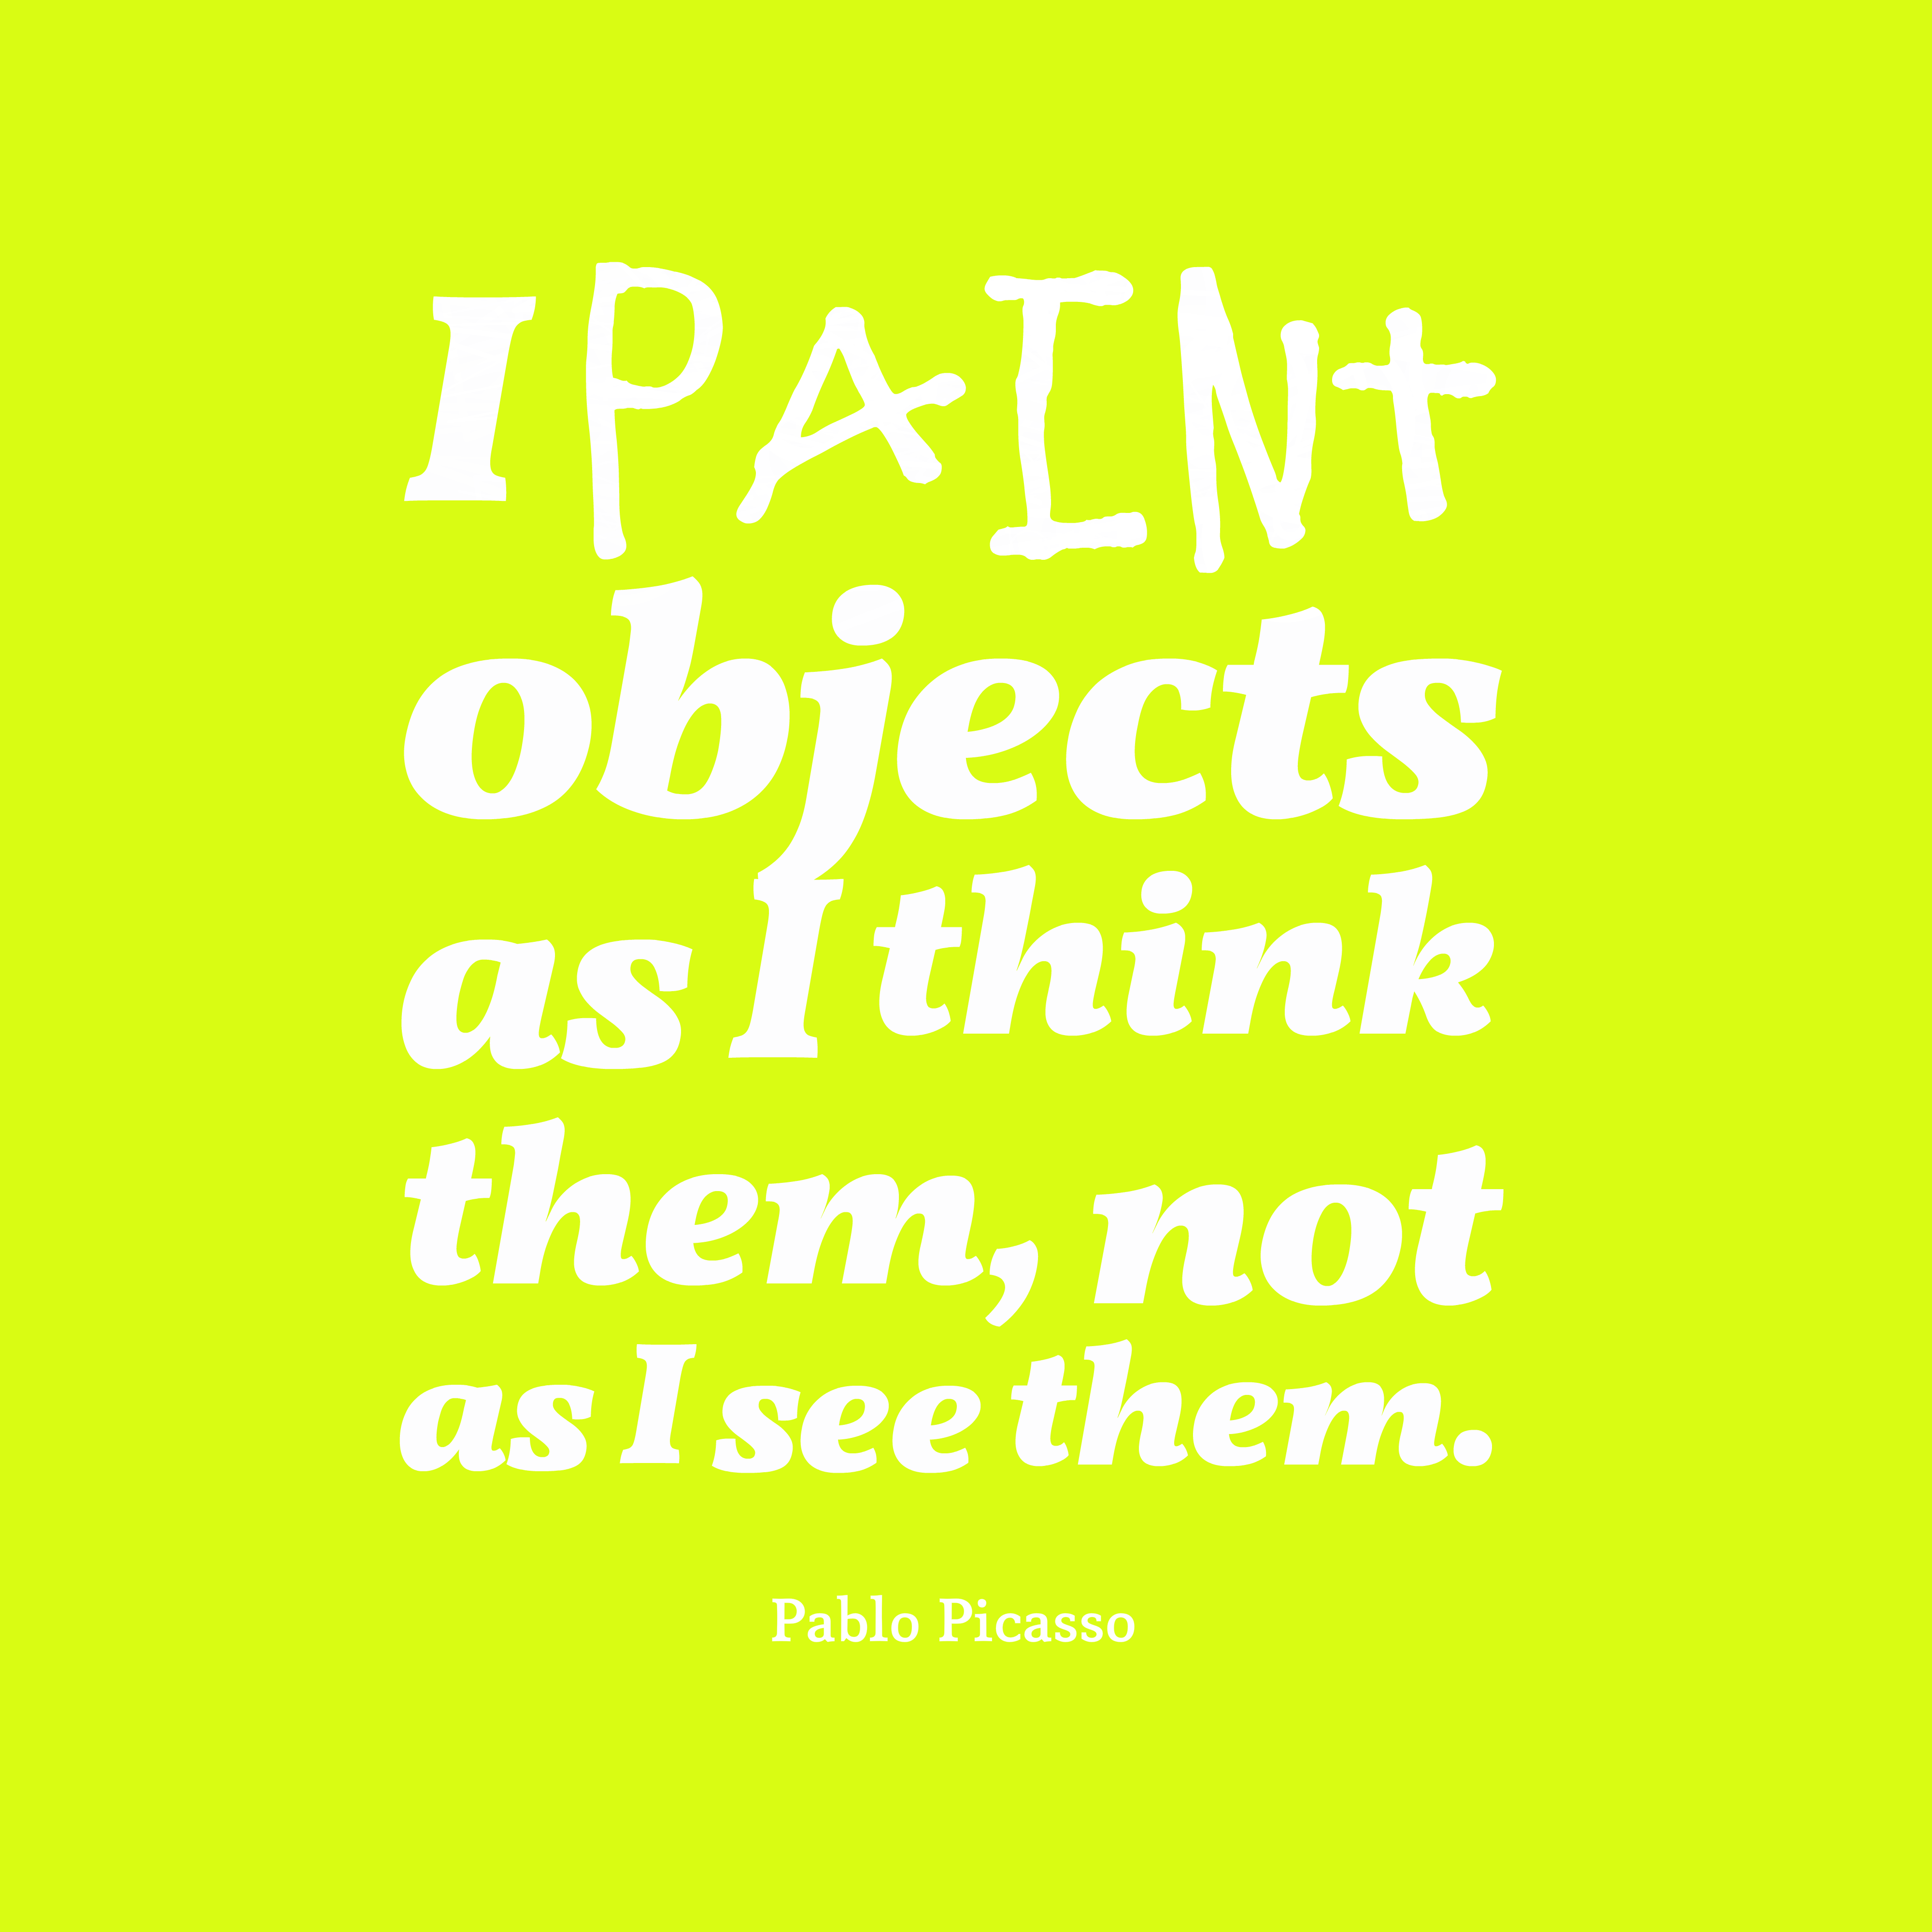 Paint Quotes Picture Pablo Picasso Quote About Paint Quotescover